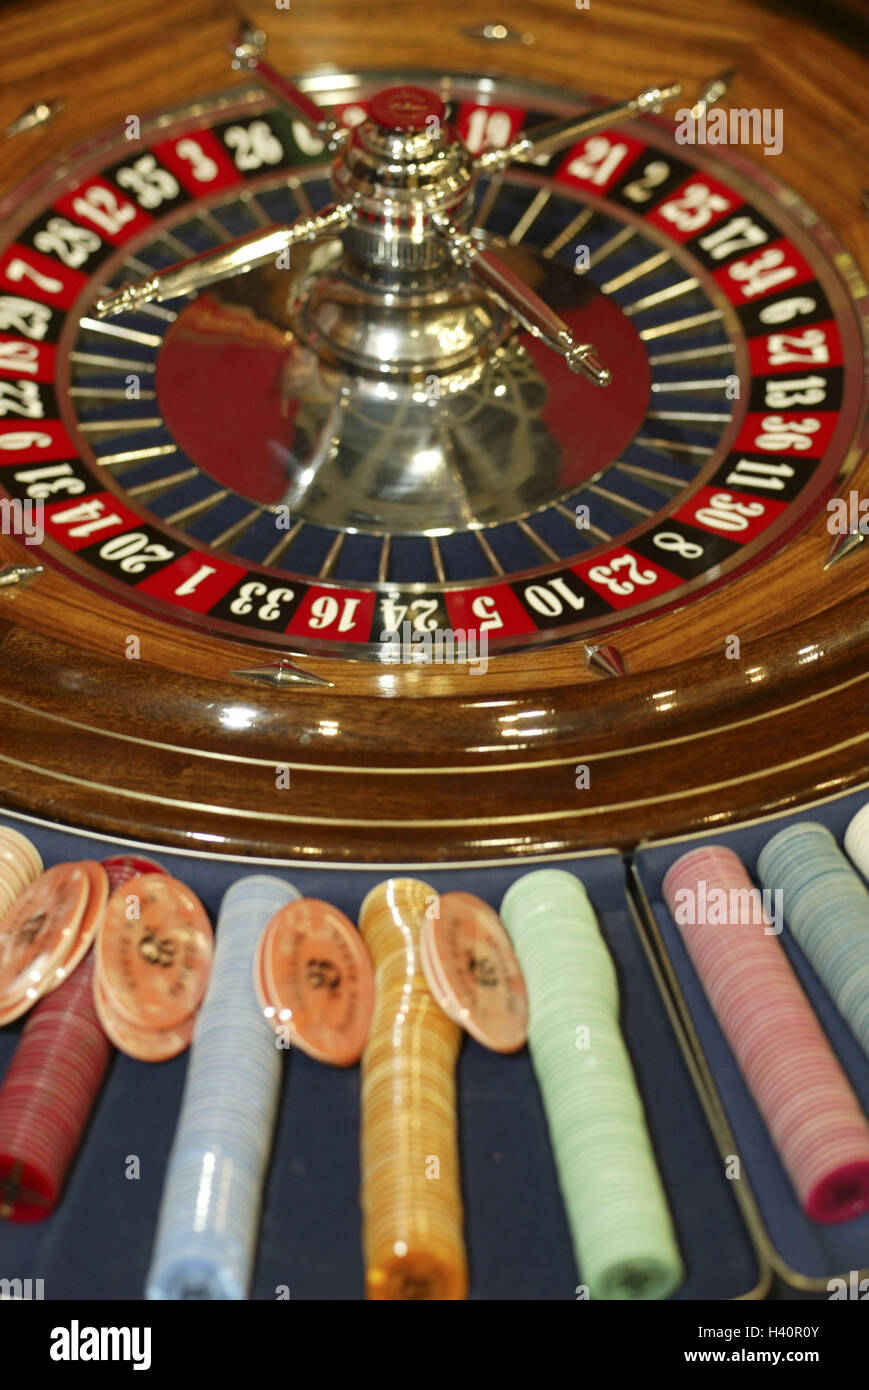 Casino, roulette, tokens, detail, casino, game chance, game, risk, chance, roulette game, roulette, roulette game, - Stock Image